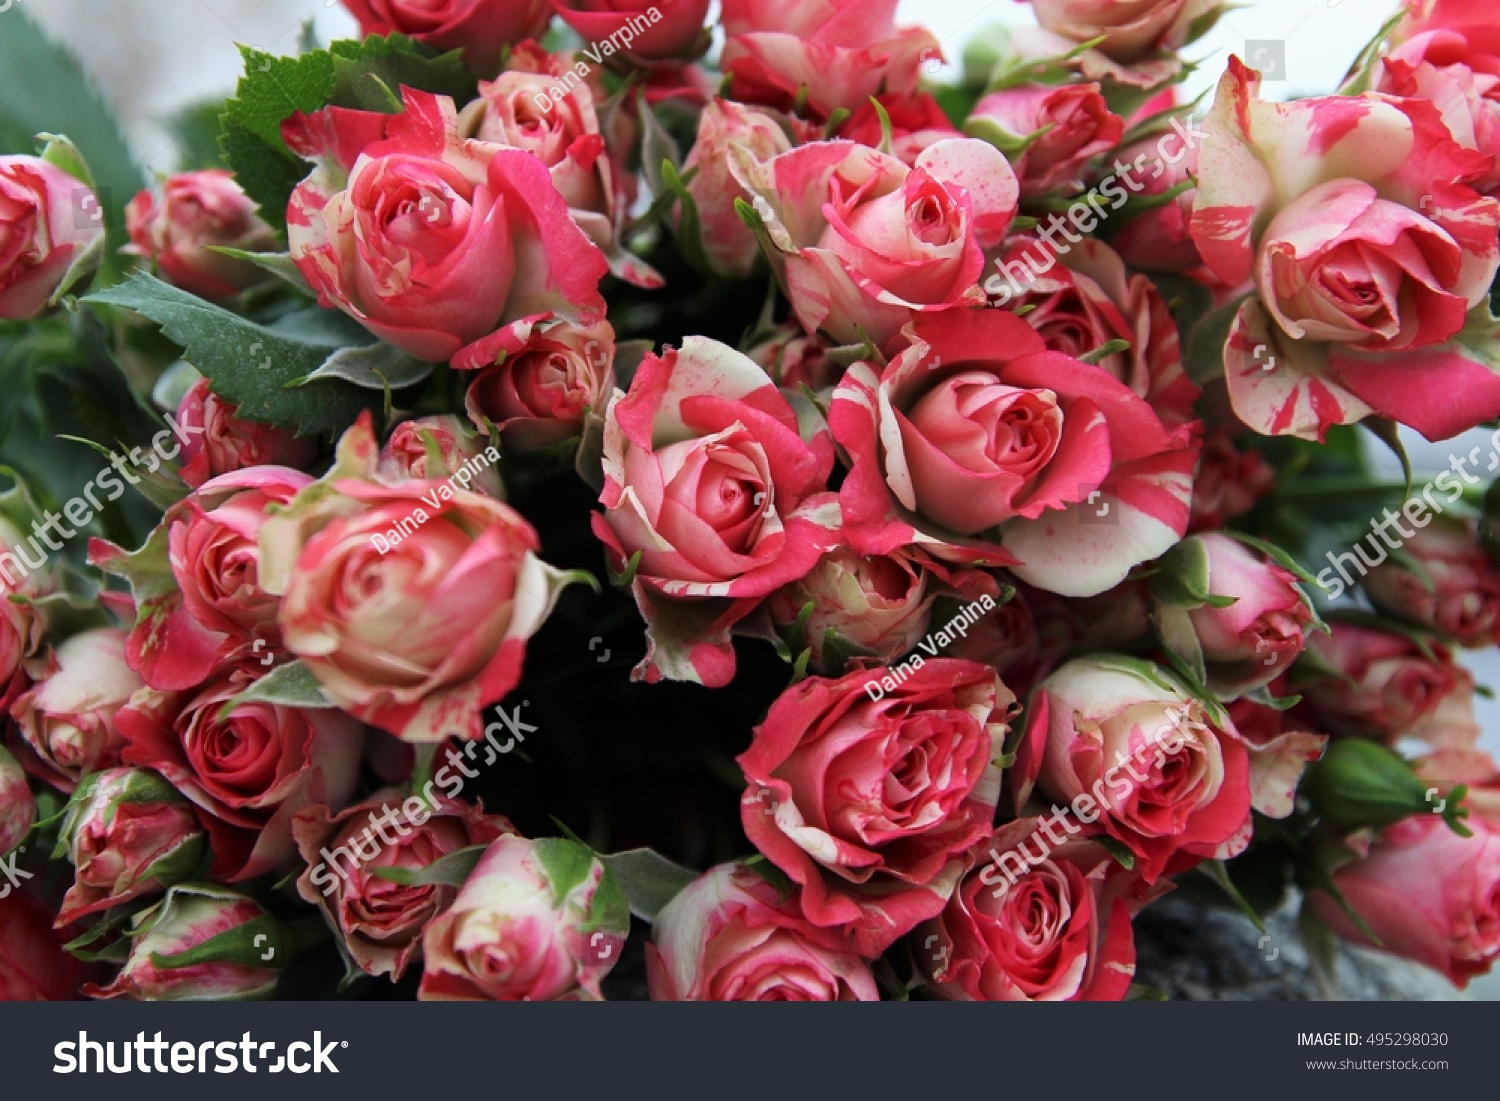 Pink rose flower bouquet background pink stock photo edit now pink rose flower bouquet background pink rose blossoms izmirmasajfo